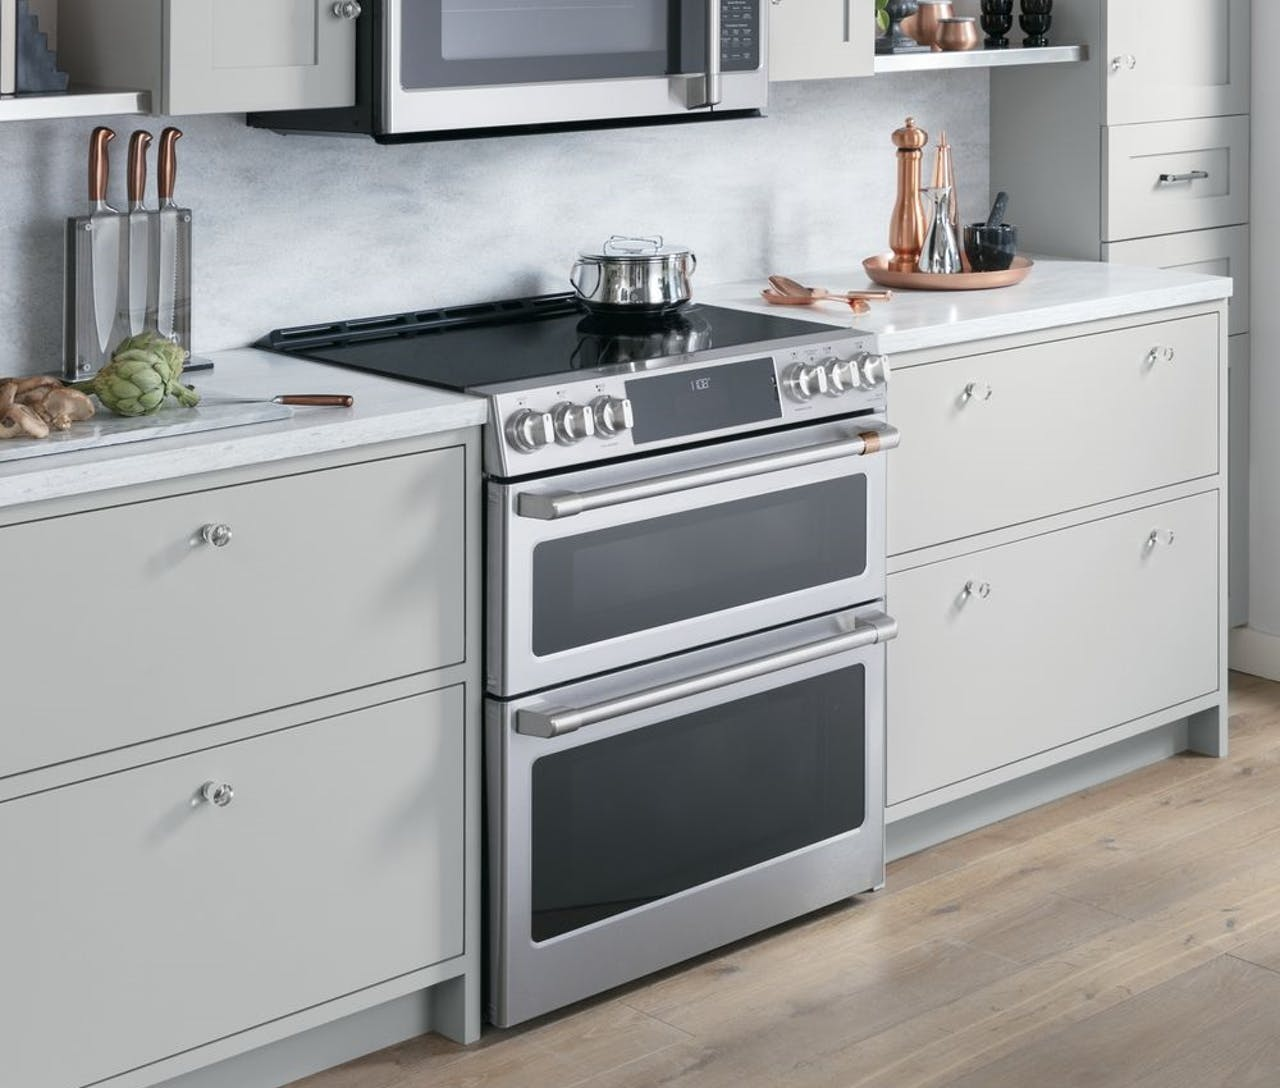 Slide in stainless steel cafe double oven range